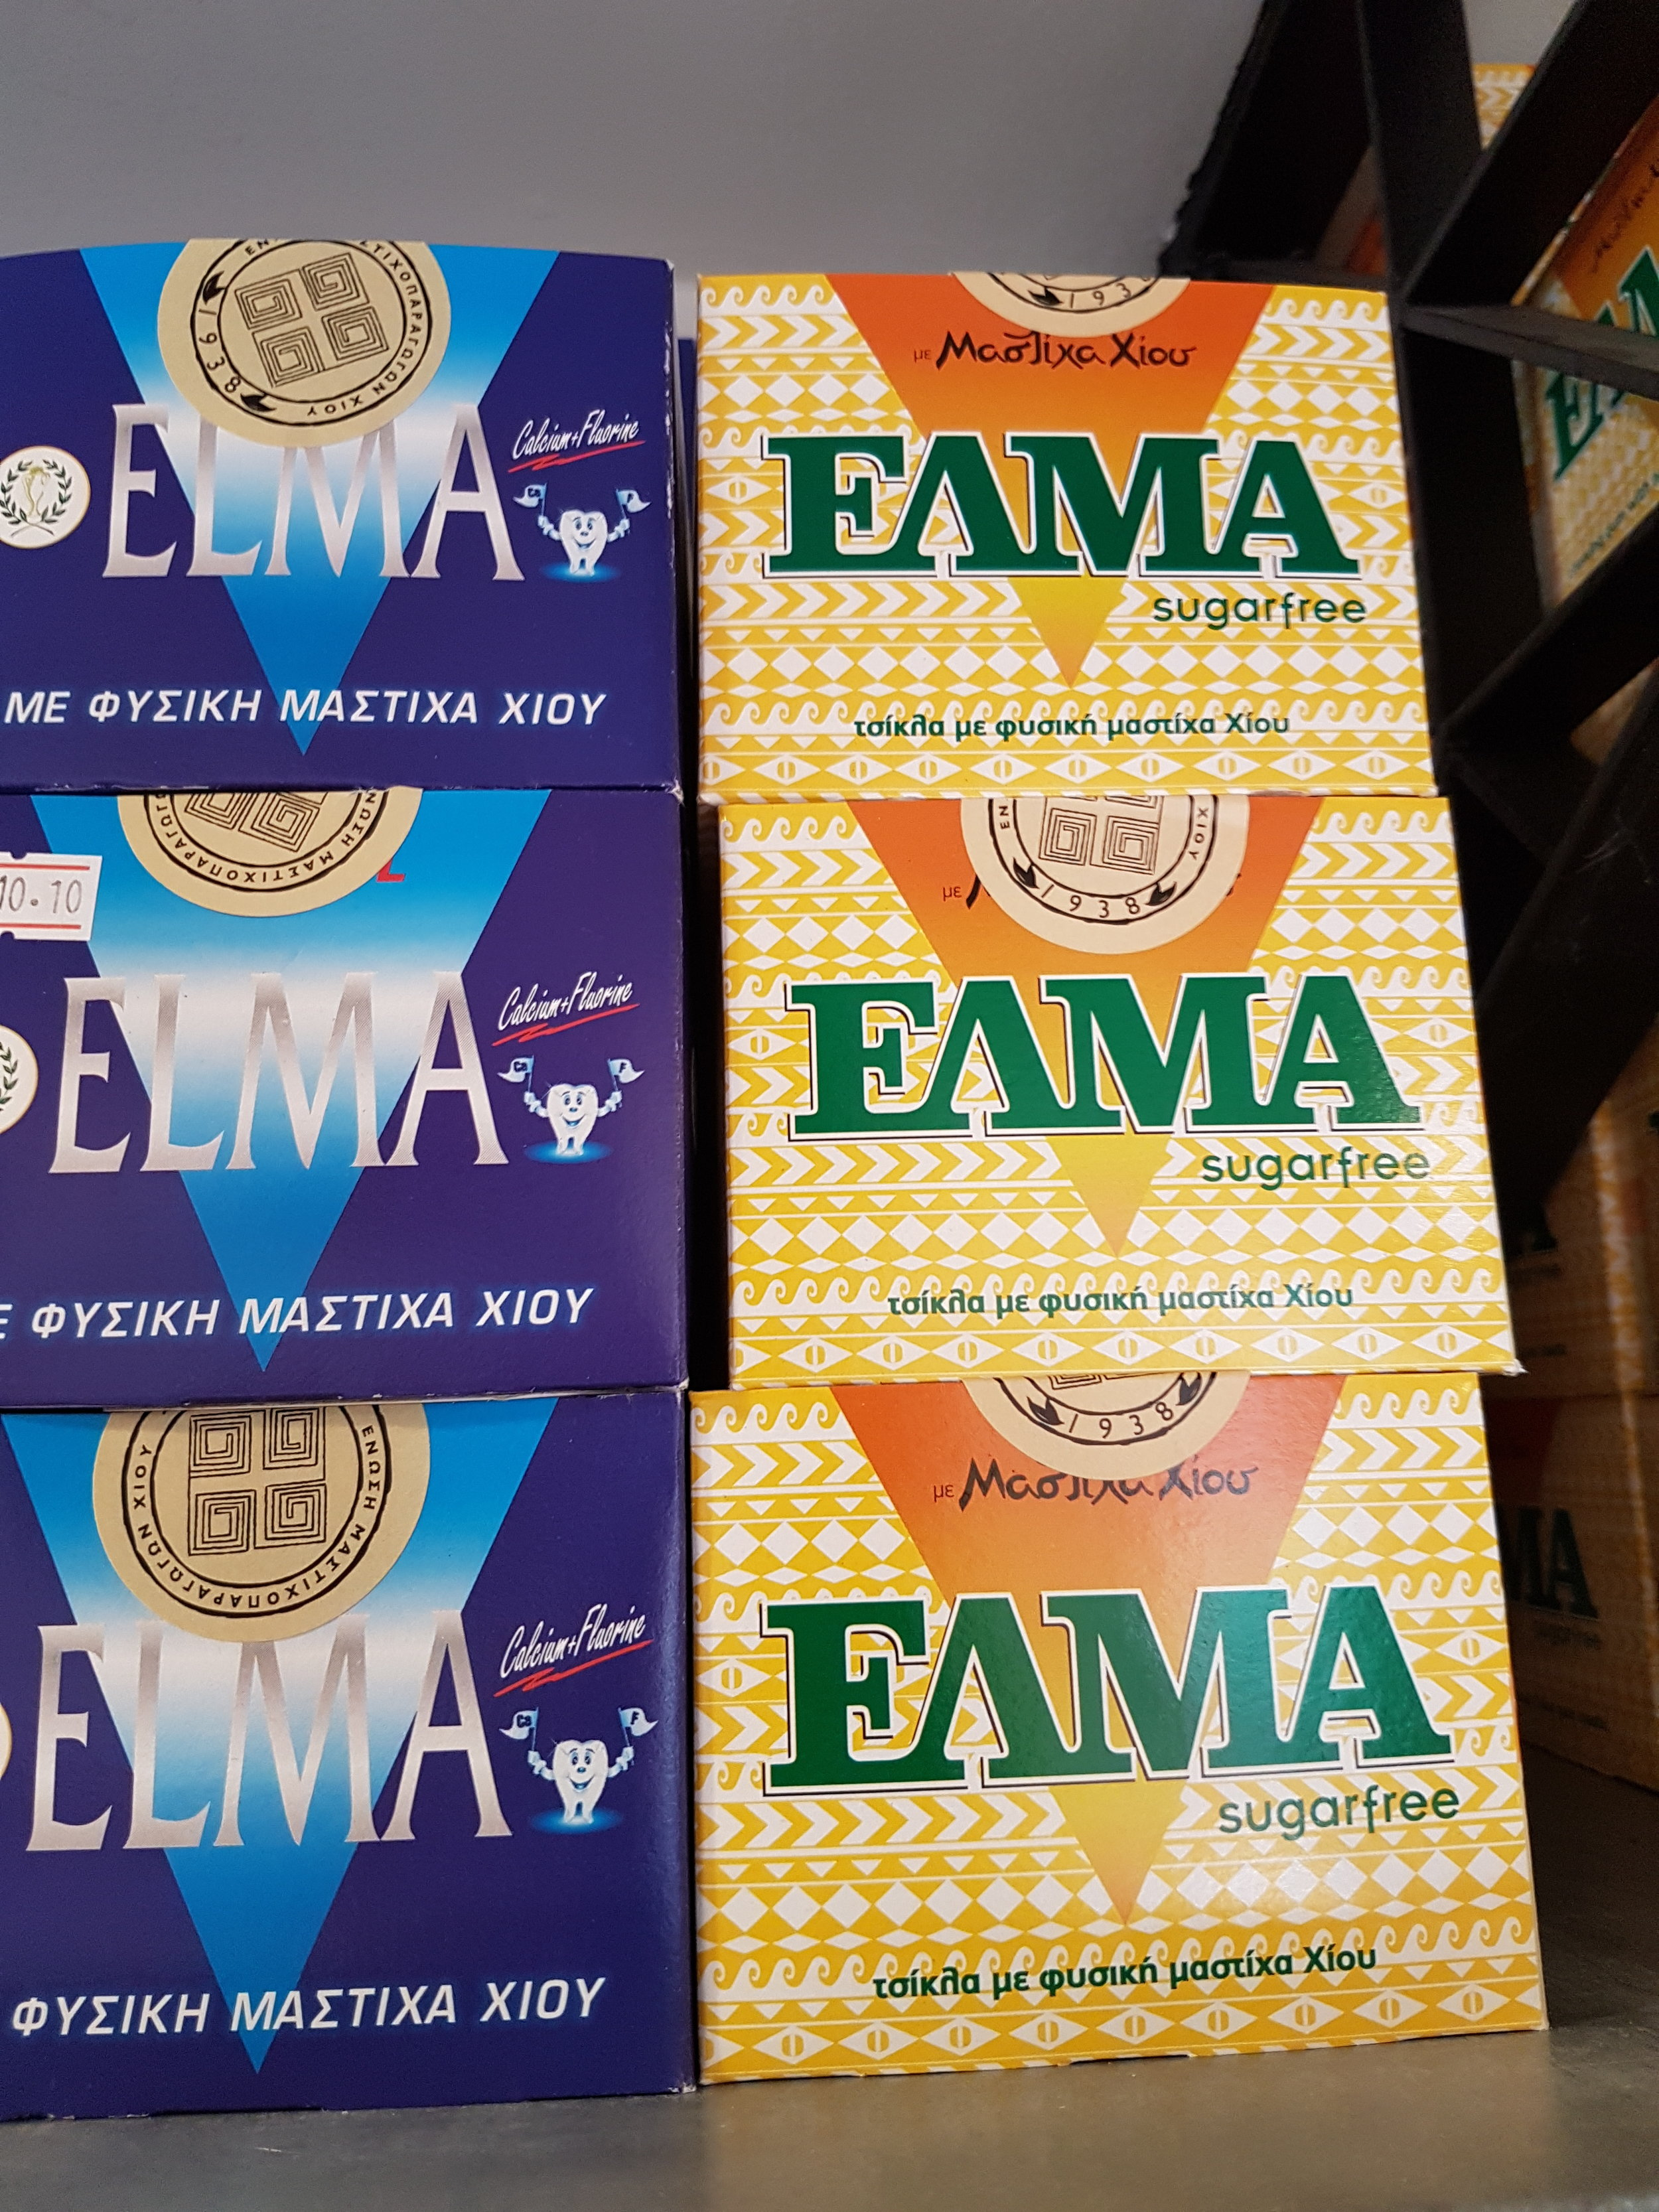 """ELMA"" is the classic modern day brand of chewing gum made from mastiha, found at nearly every kiosk in Greece. -"